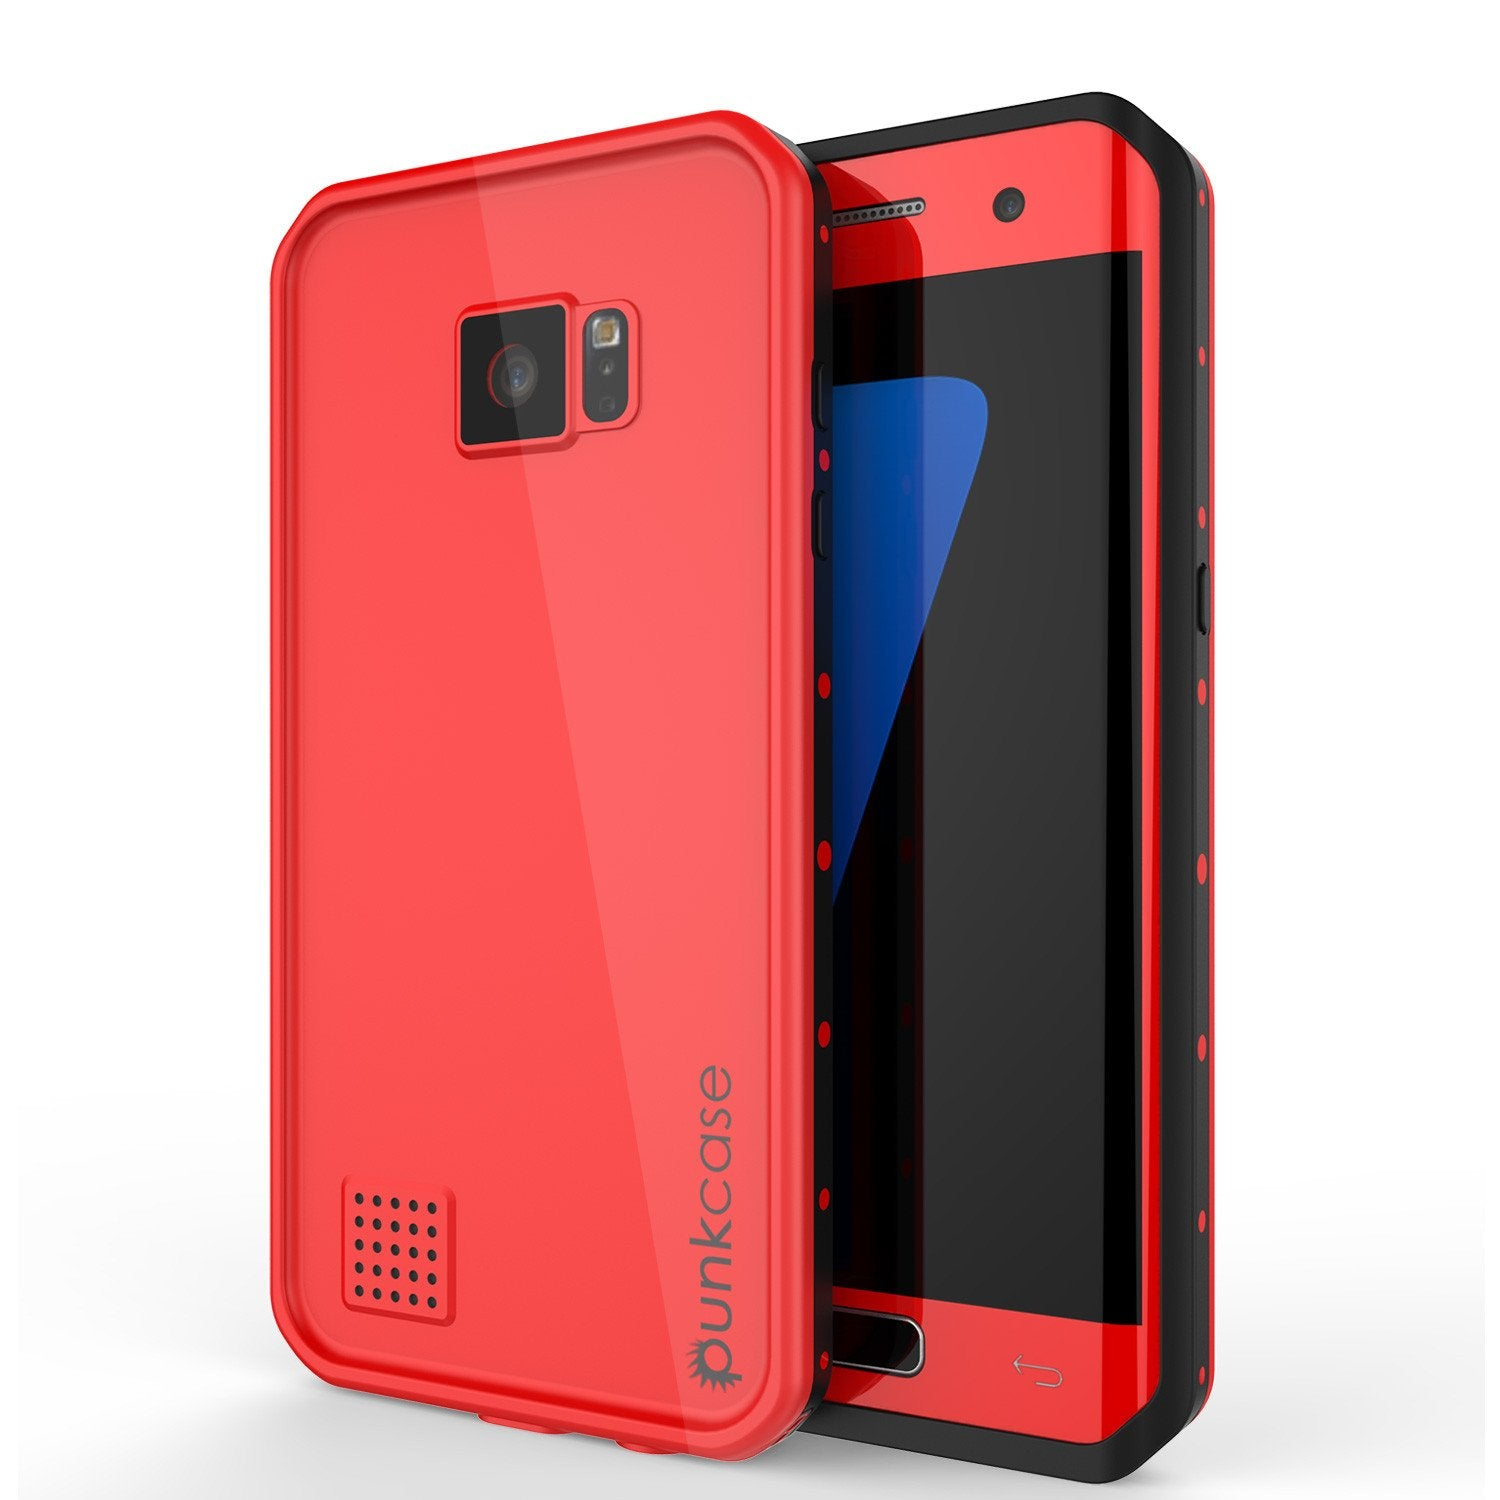 half off 0fa21 8320f Galaxy S7 EDGE Waterproof Case PunkCase StudStar Red Thin 6.6ft Underwater  IP68 Shock/Snow Proof